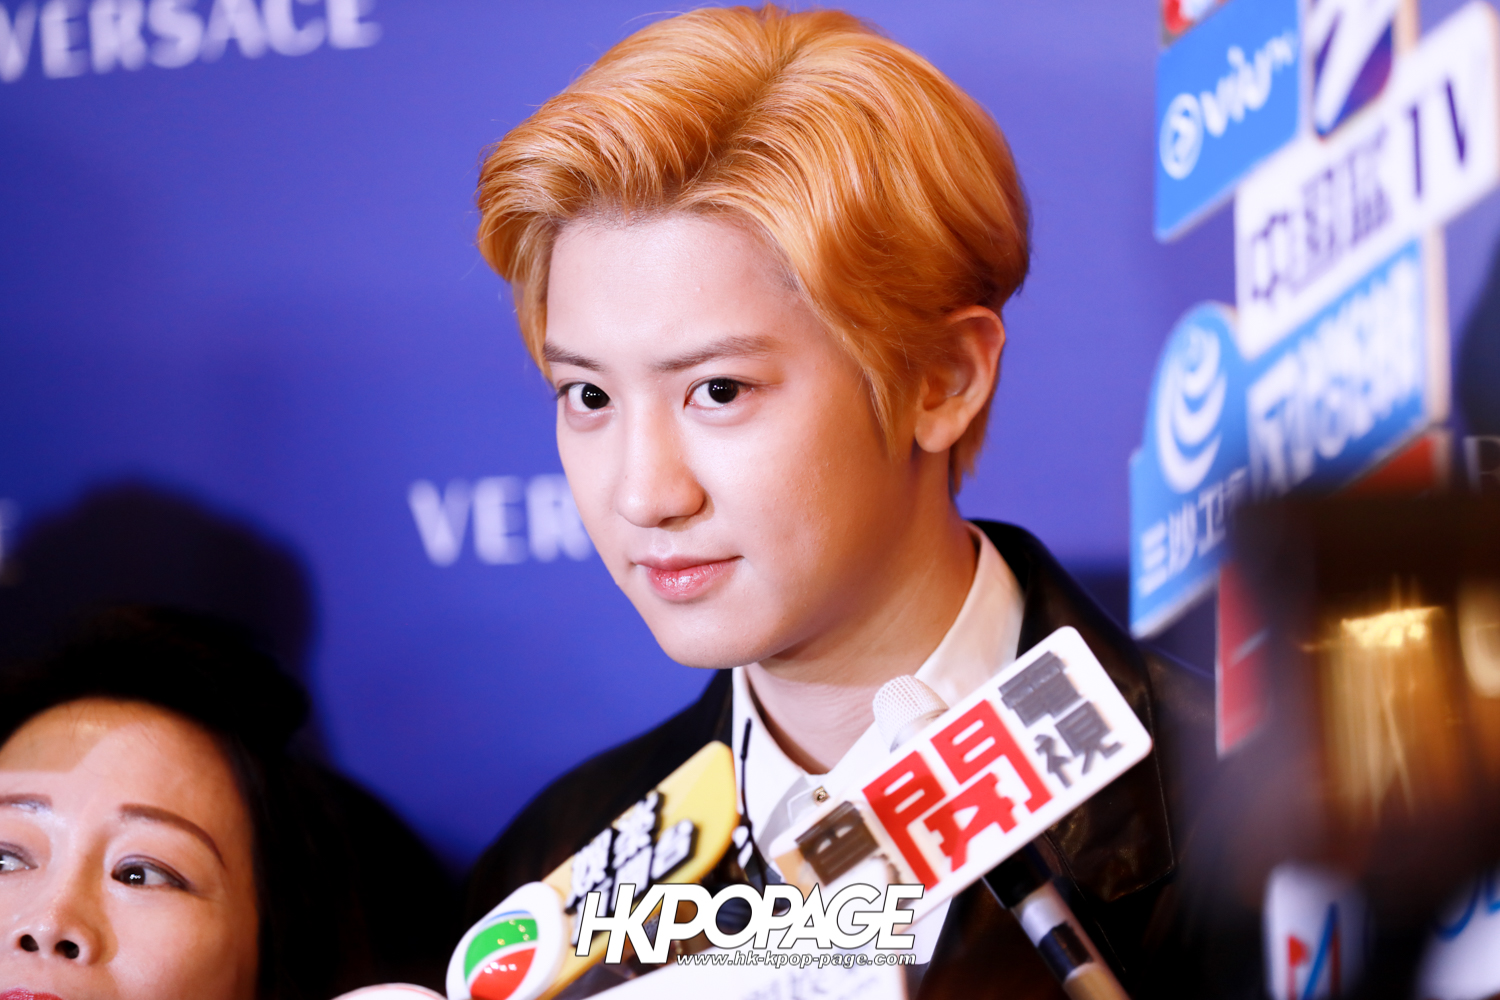 [HK.KPOP.PAGE] 190426_Chanyeol_VERSACE EVENT-14